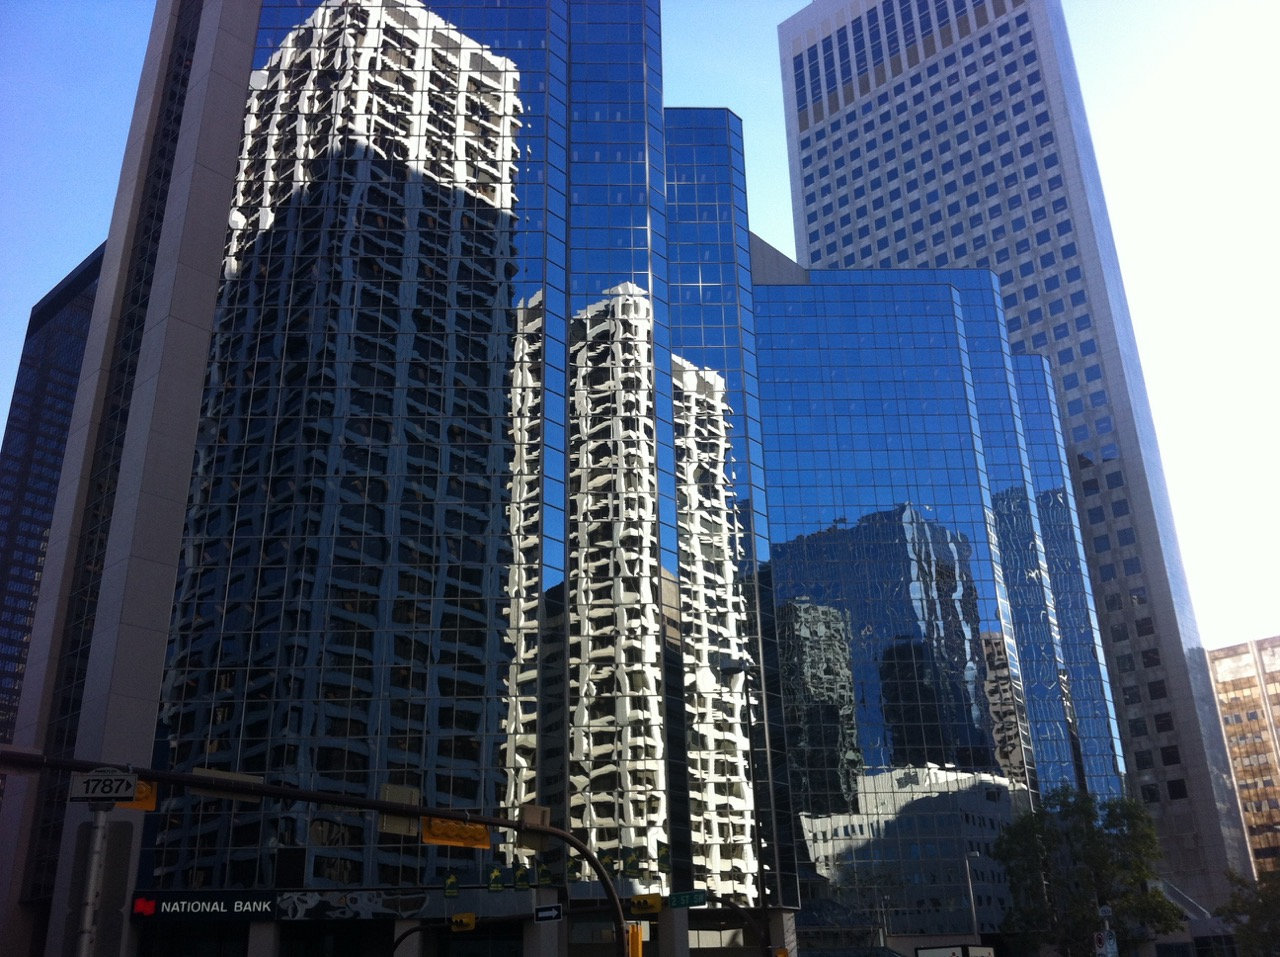 Another example of a street in Calgary's CBD that is just a wall of glass from office buildings.